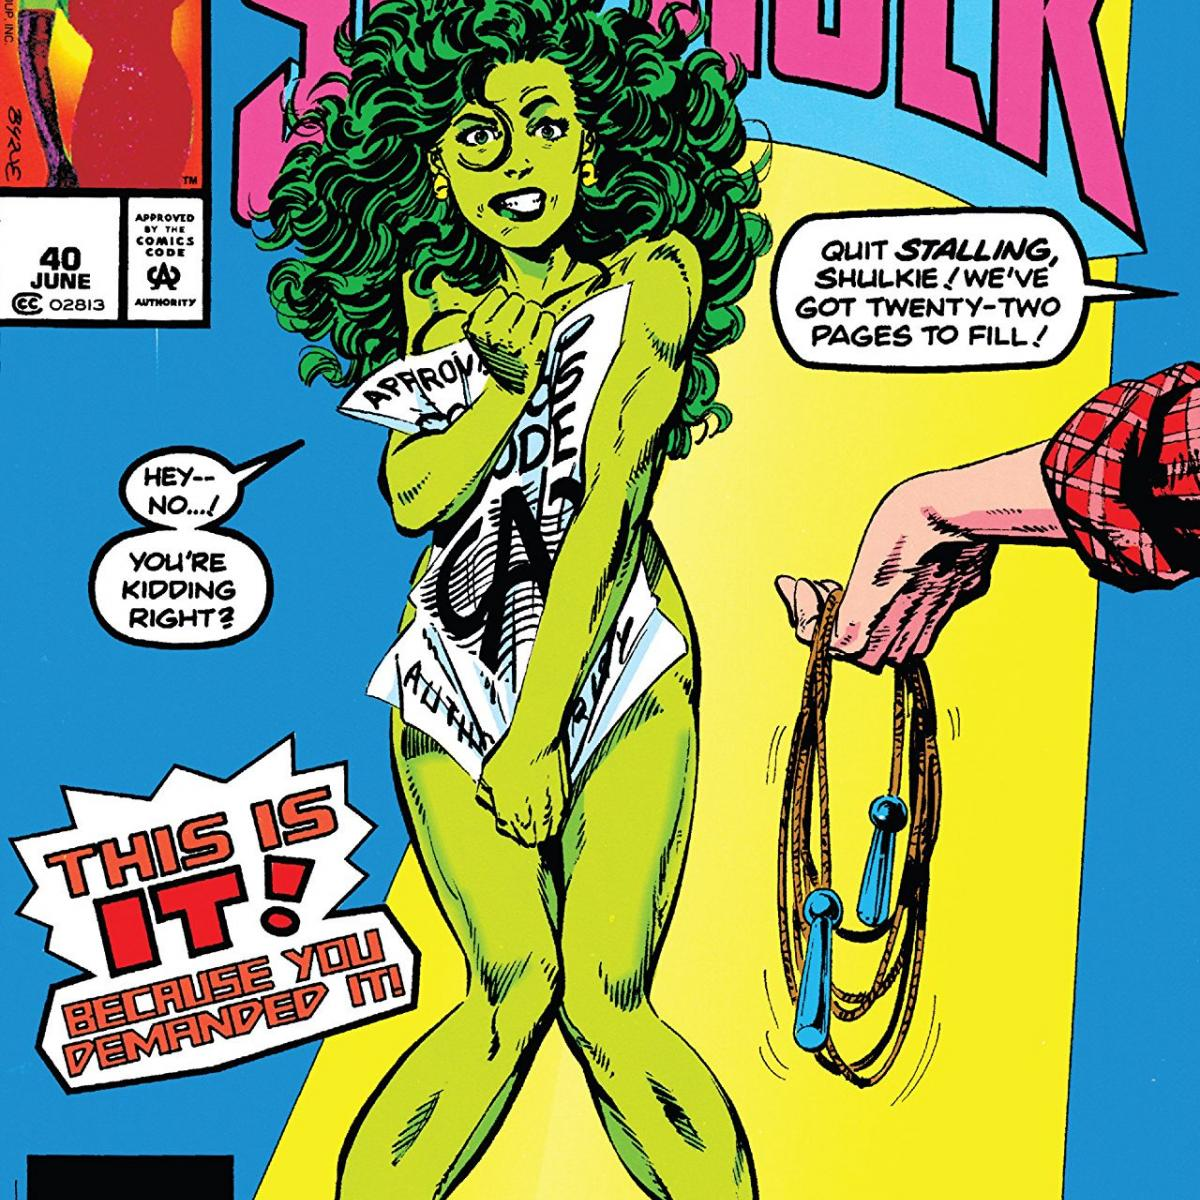 Image of She-Hulk comic cover